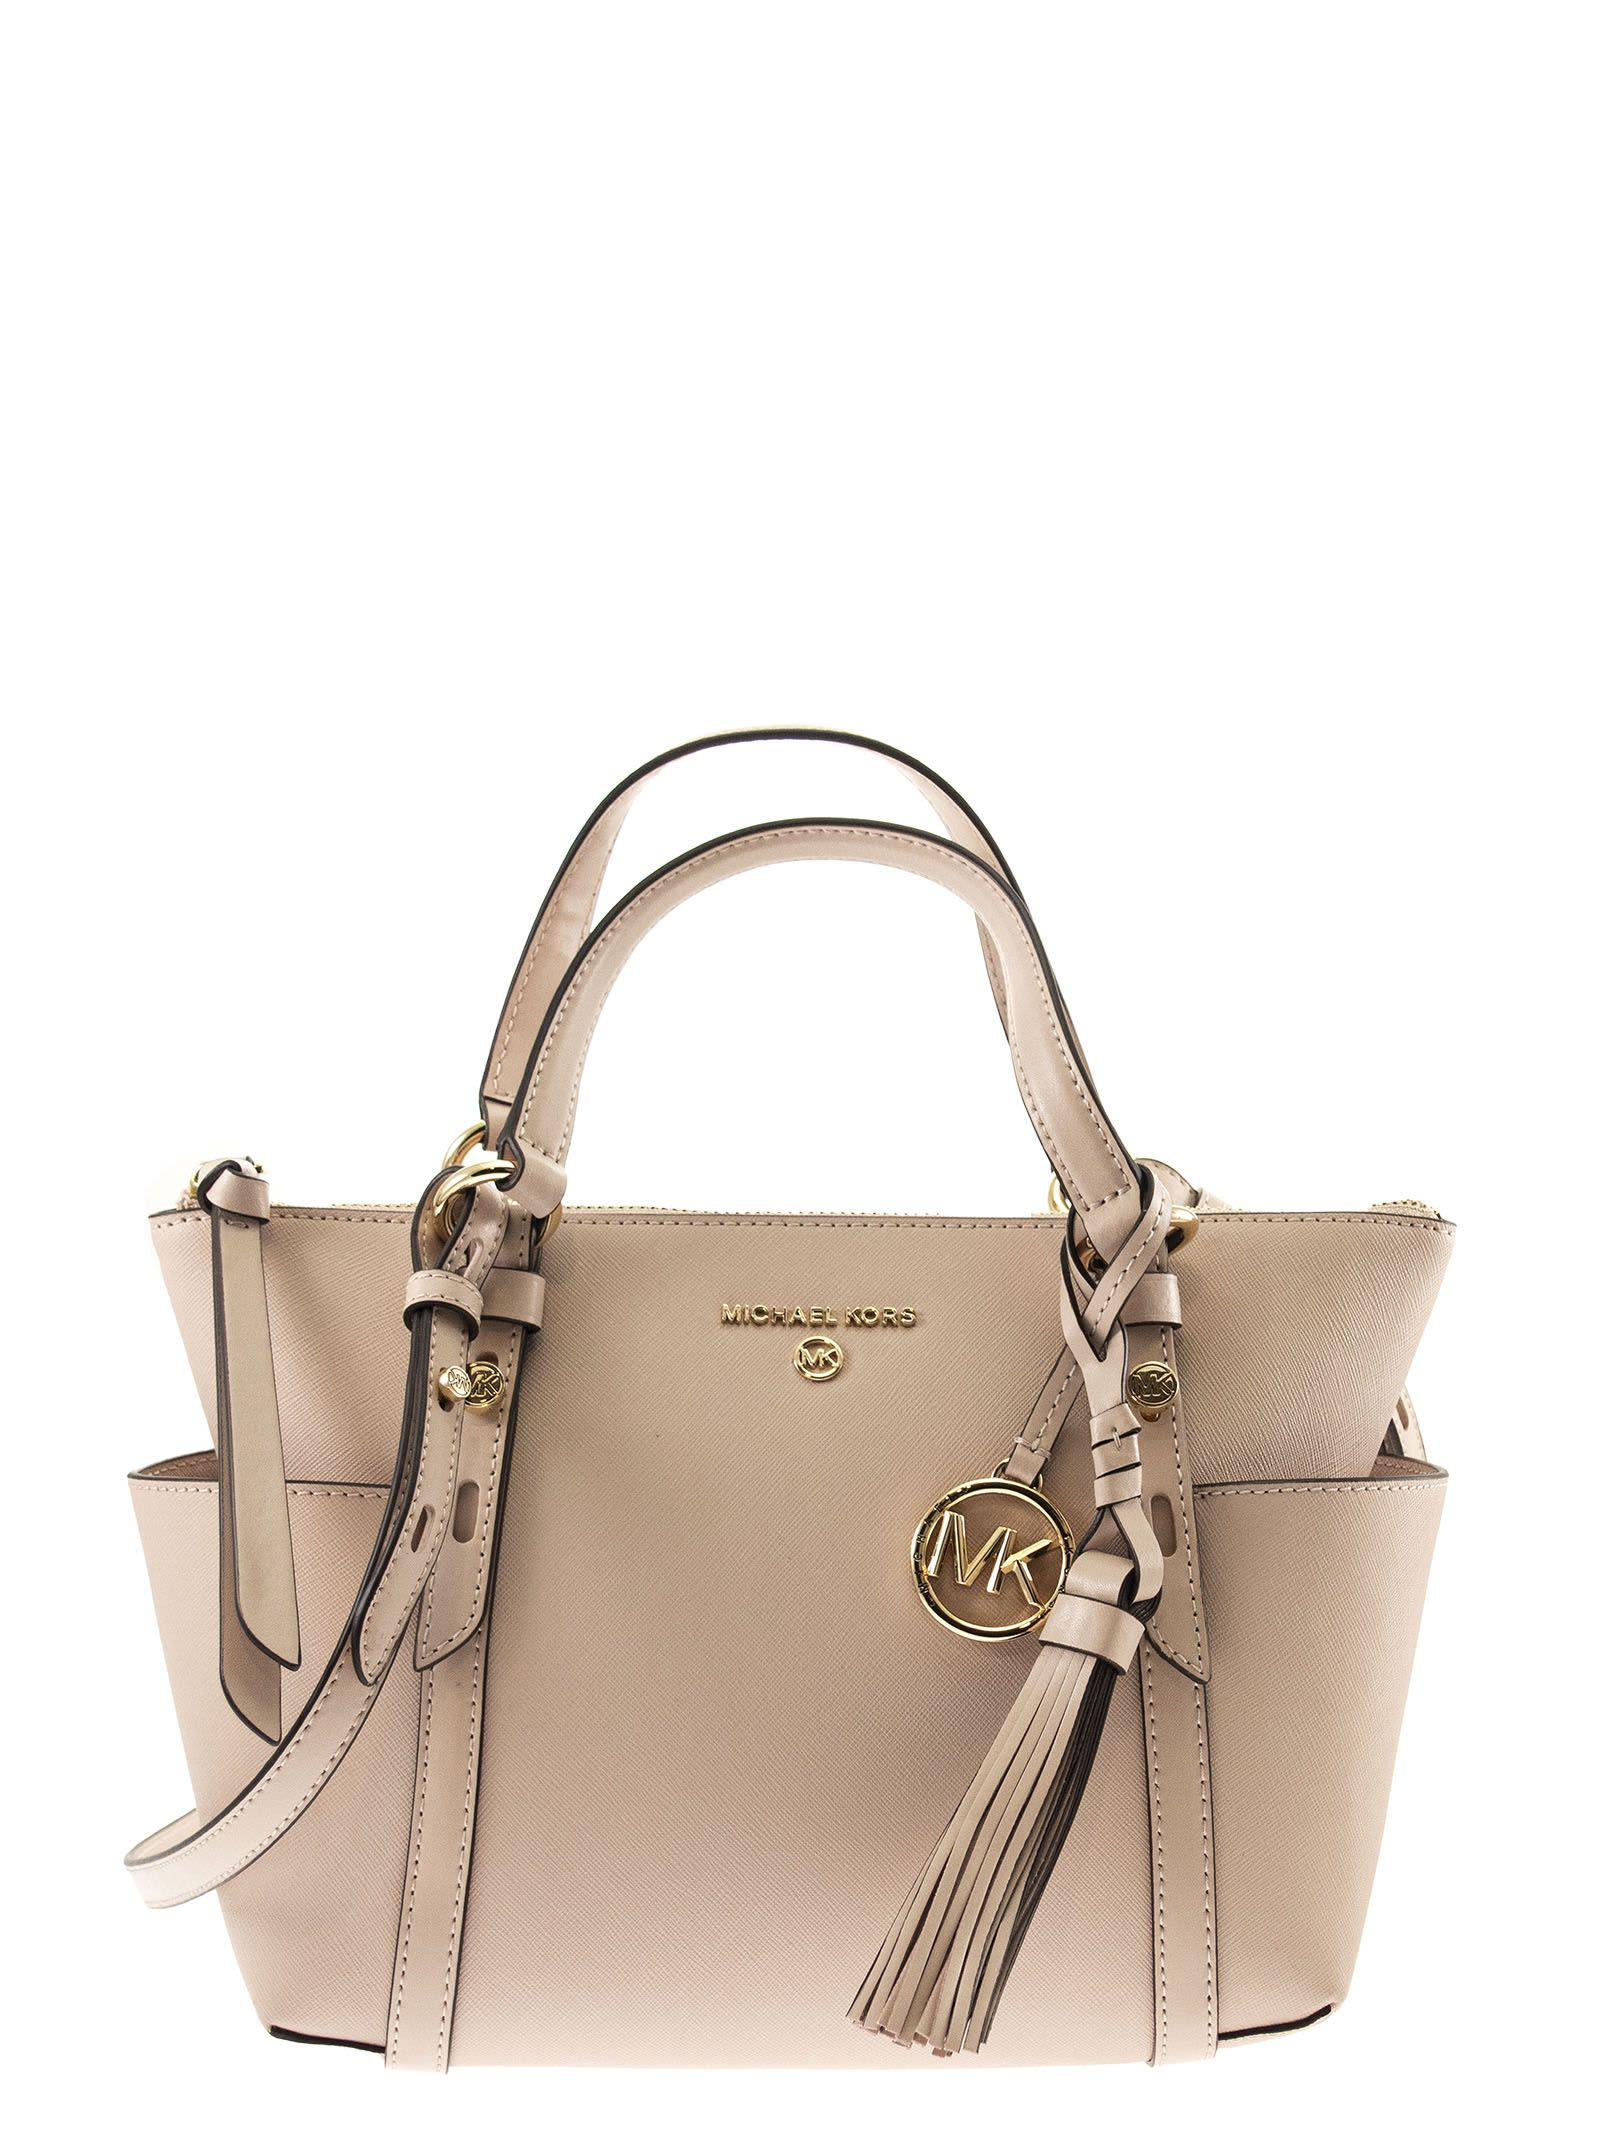 Michael Kors NOMAD SAFFIANO LEATHER TOP-ZIP TOTE BAG